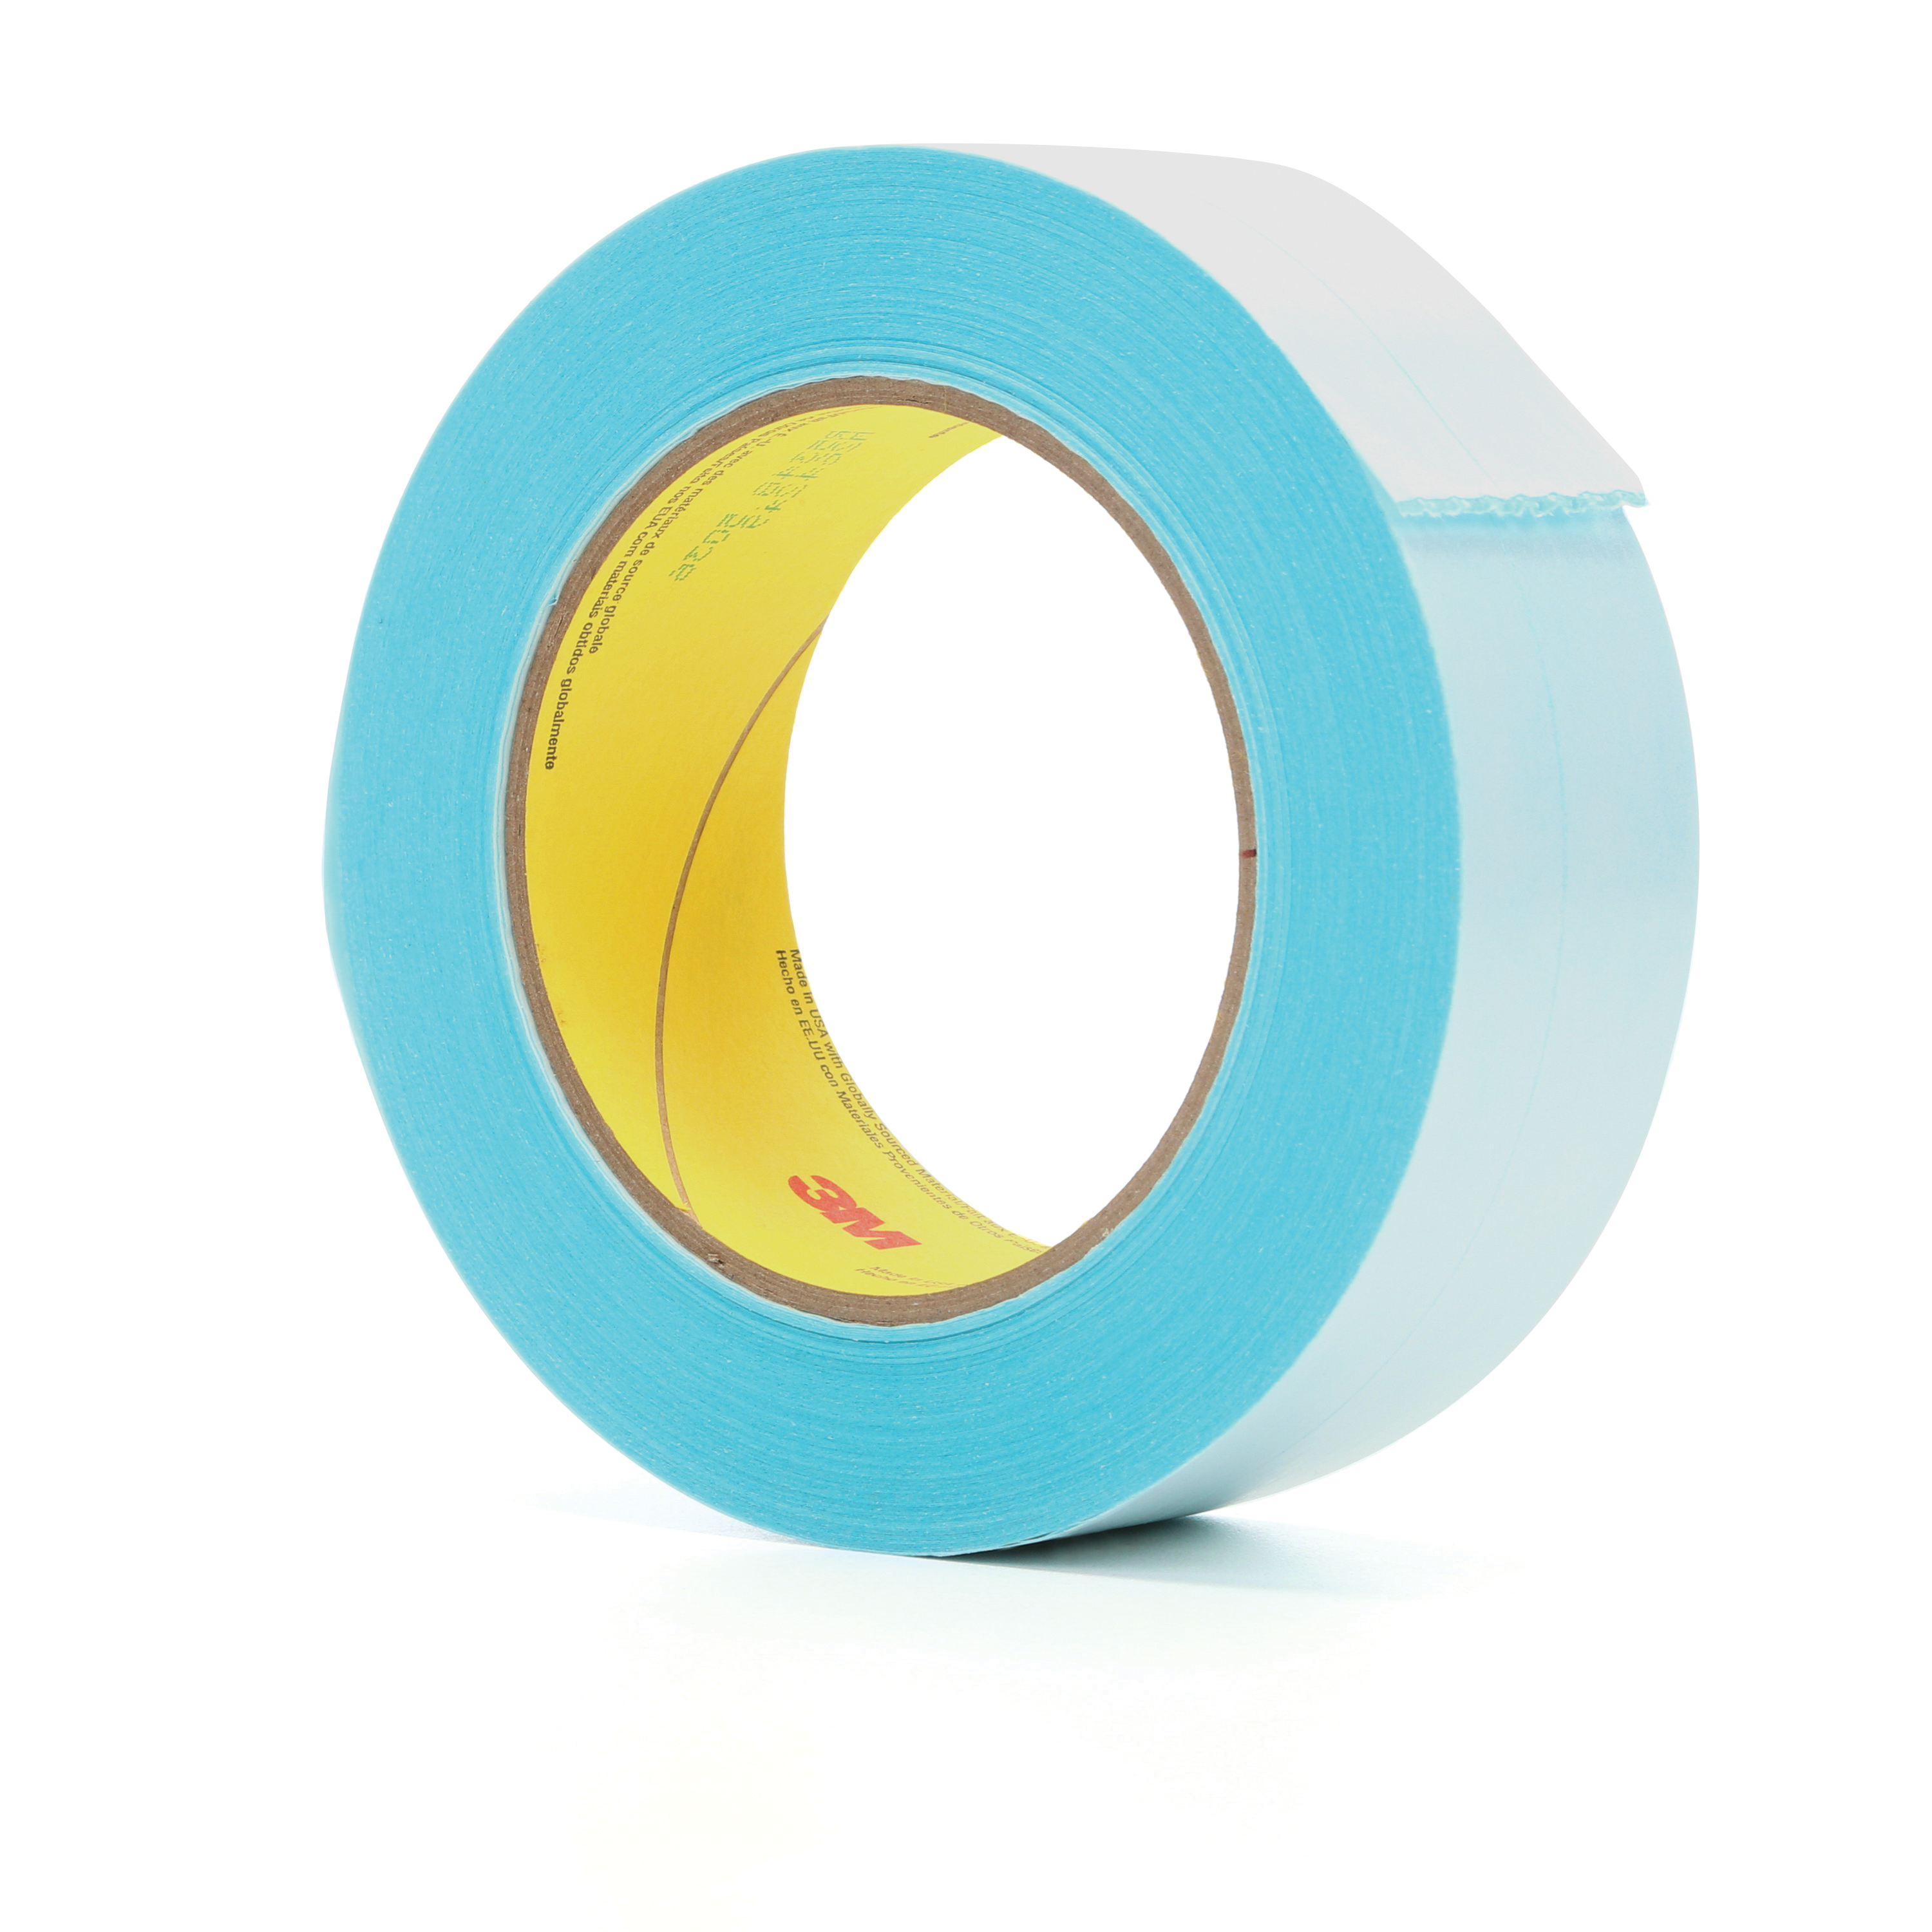 3M™ 051111-91808 480 Splicing Tape, 36 yd L x 2 in W, 5.1 mil THK, Acrylic Adhesive, Polyethylene Backing, Transparent